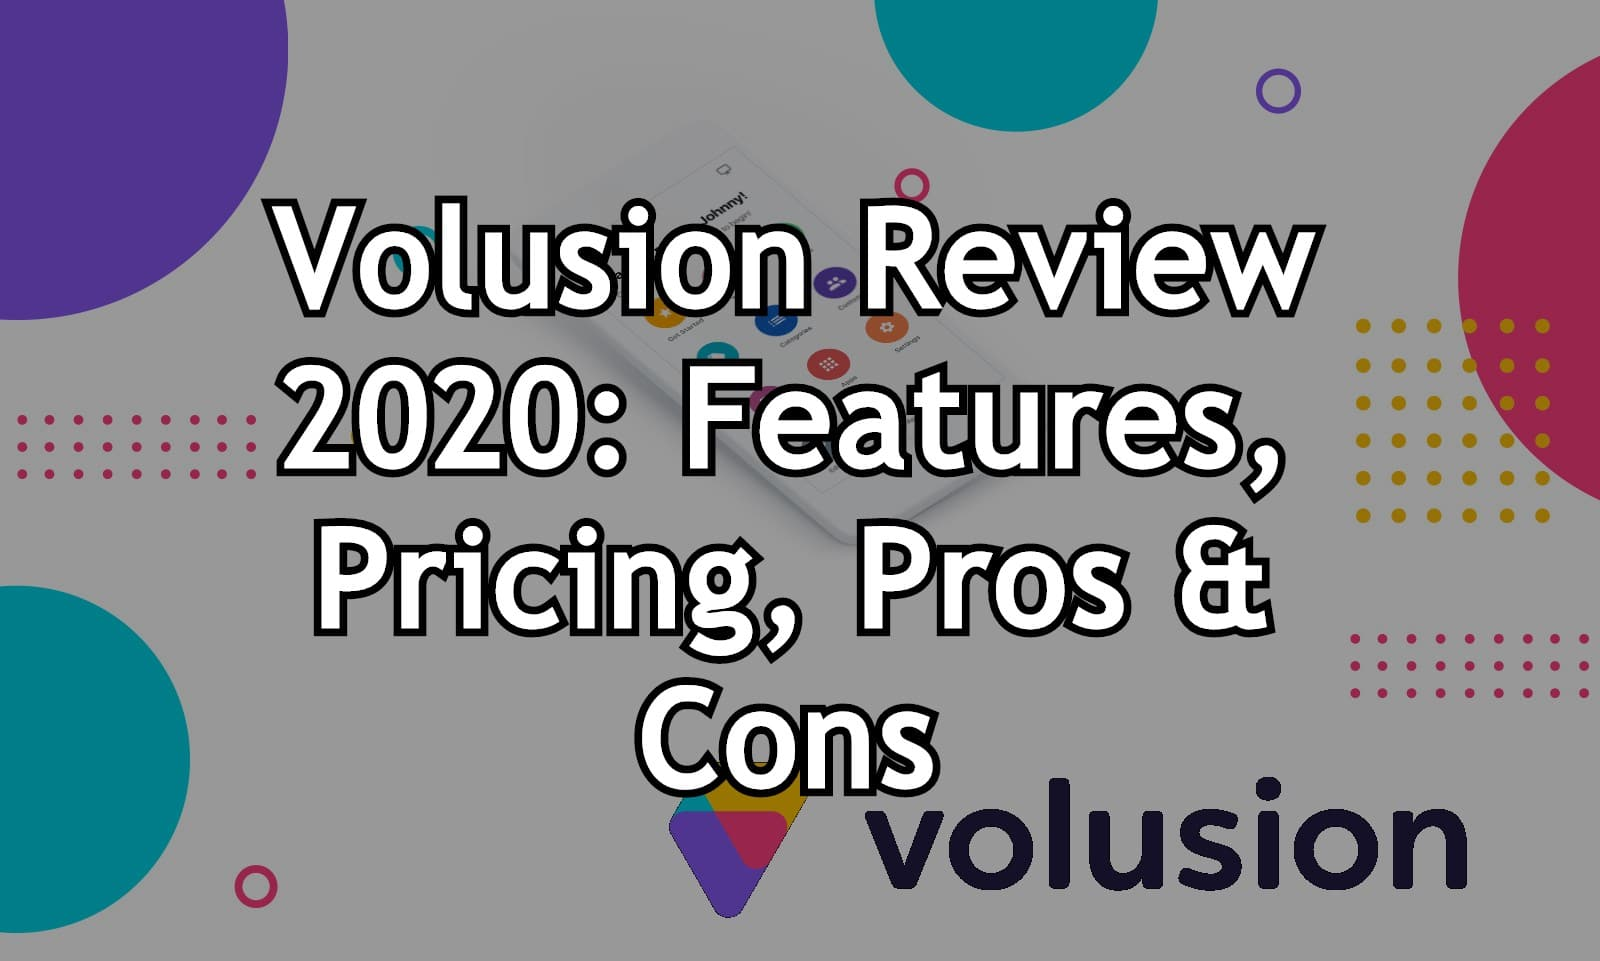 Volusion Review 2020